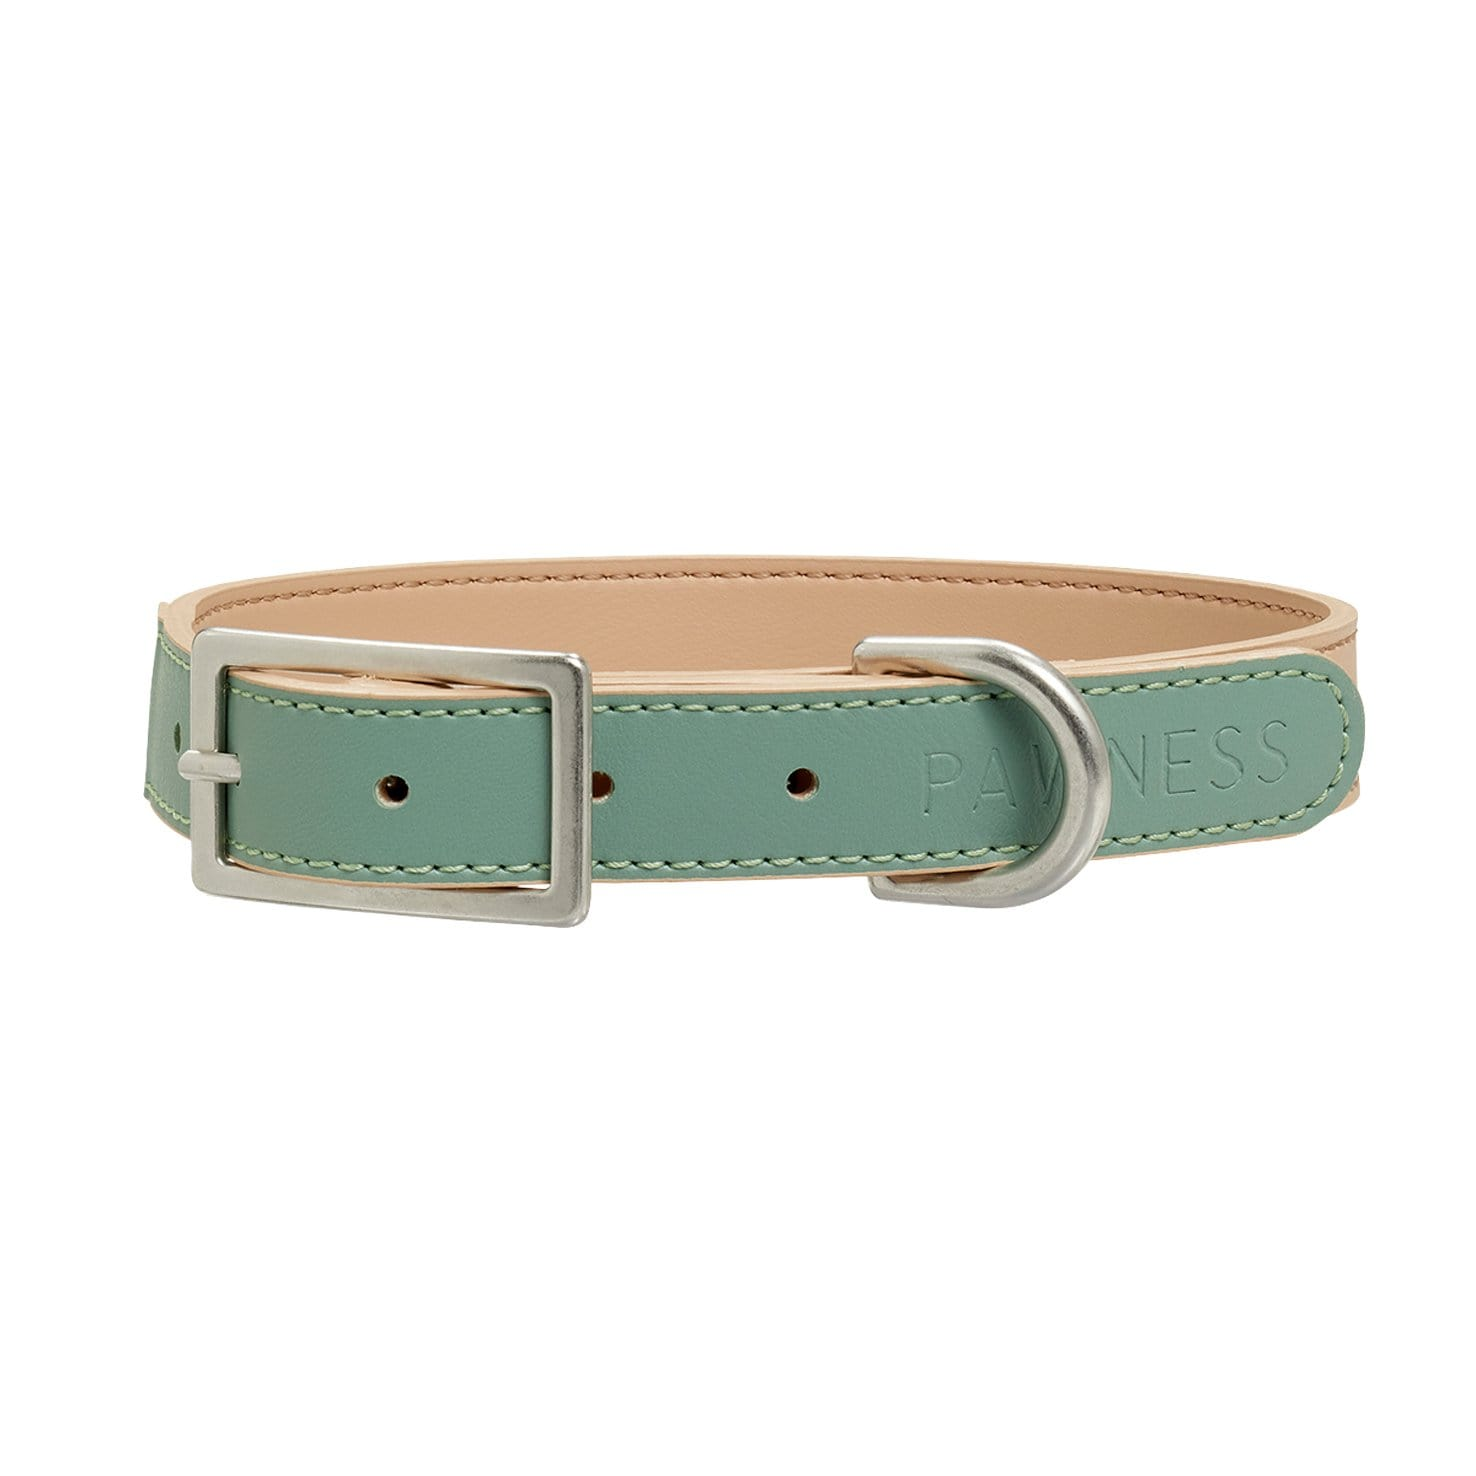 Pawness Collars + Harnesses Vegan Leather Collar Bo - Emerald